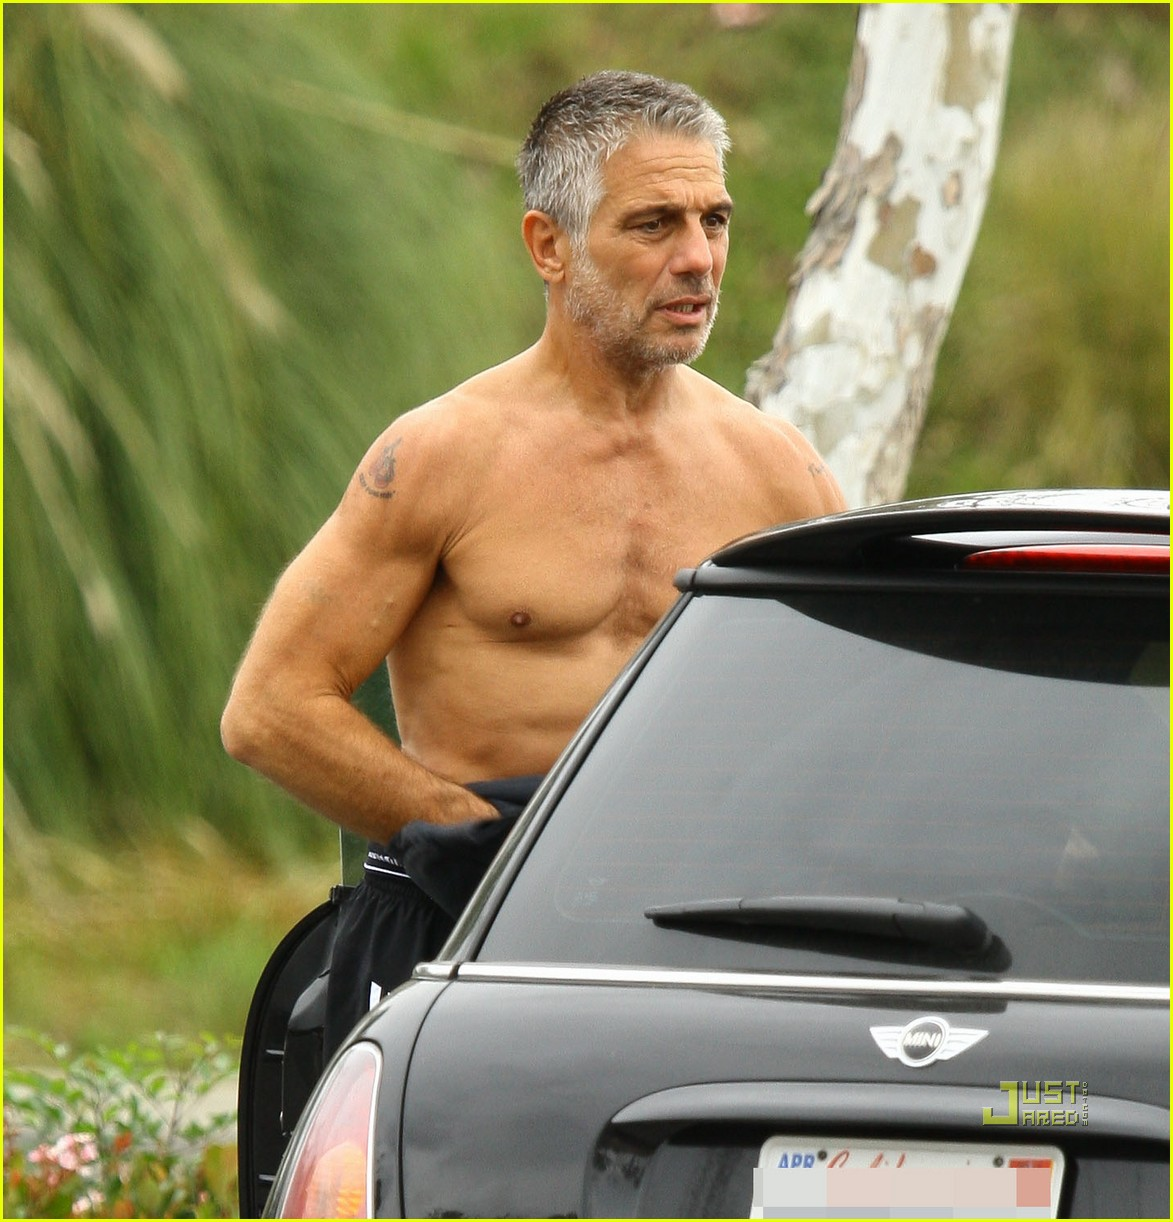 Tony Danza Goes Shirtless Before Shopping: Photo 2521305